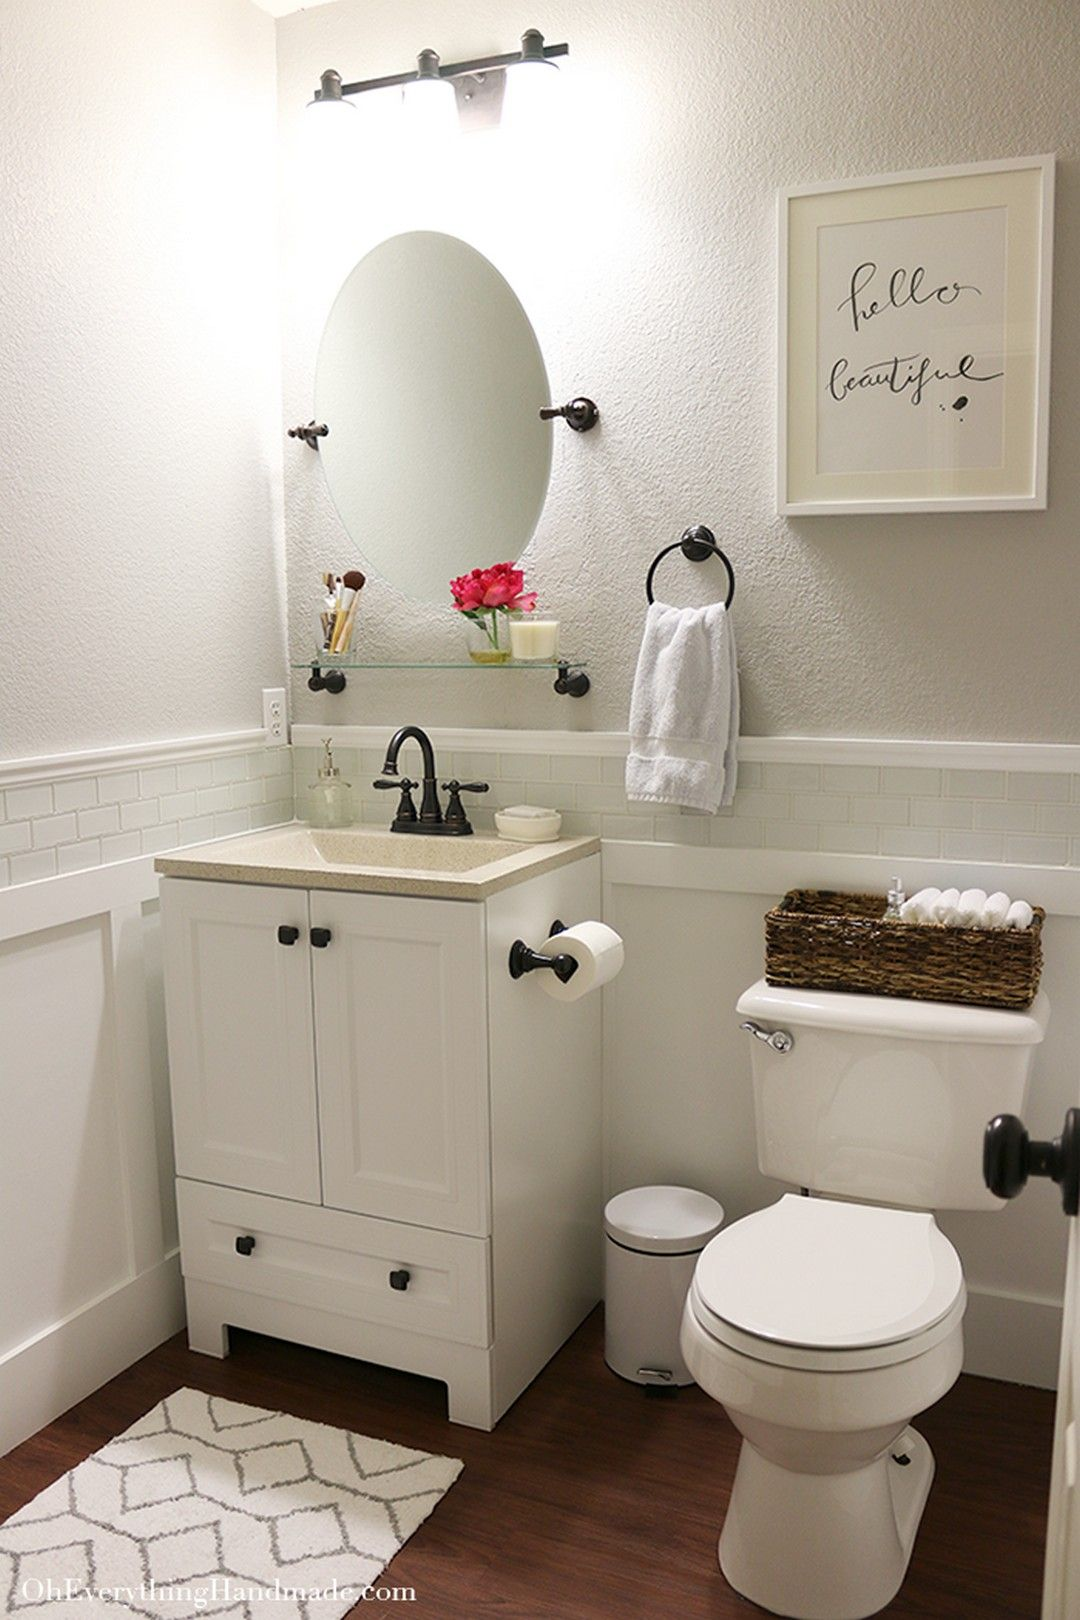 Bathroom Designs On A Budget Nice 99 Small Master Bathroom Makeover Ideas On A Budget Http